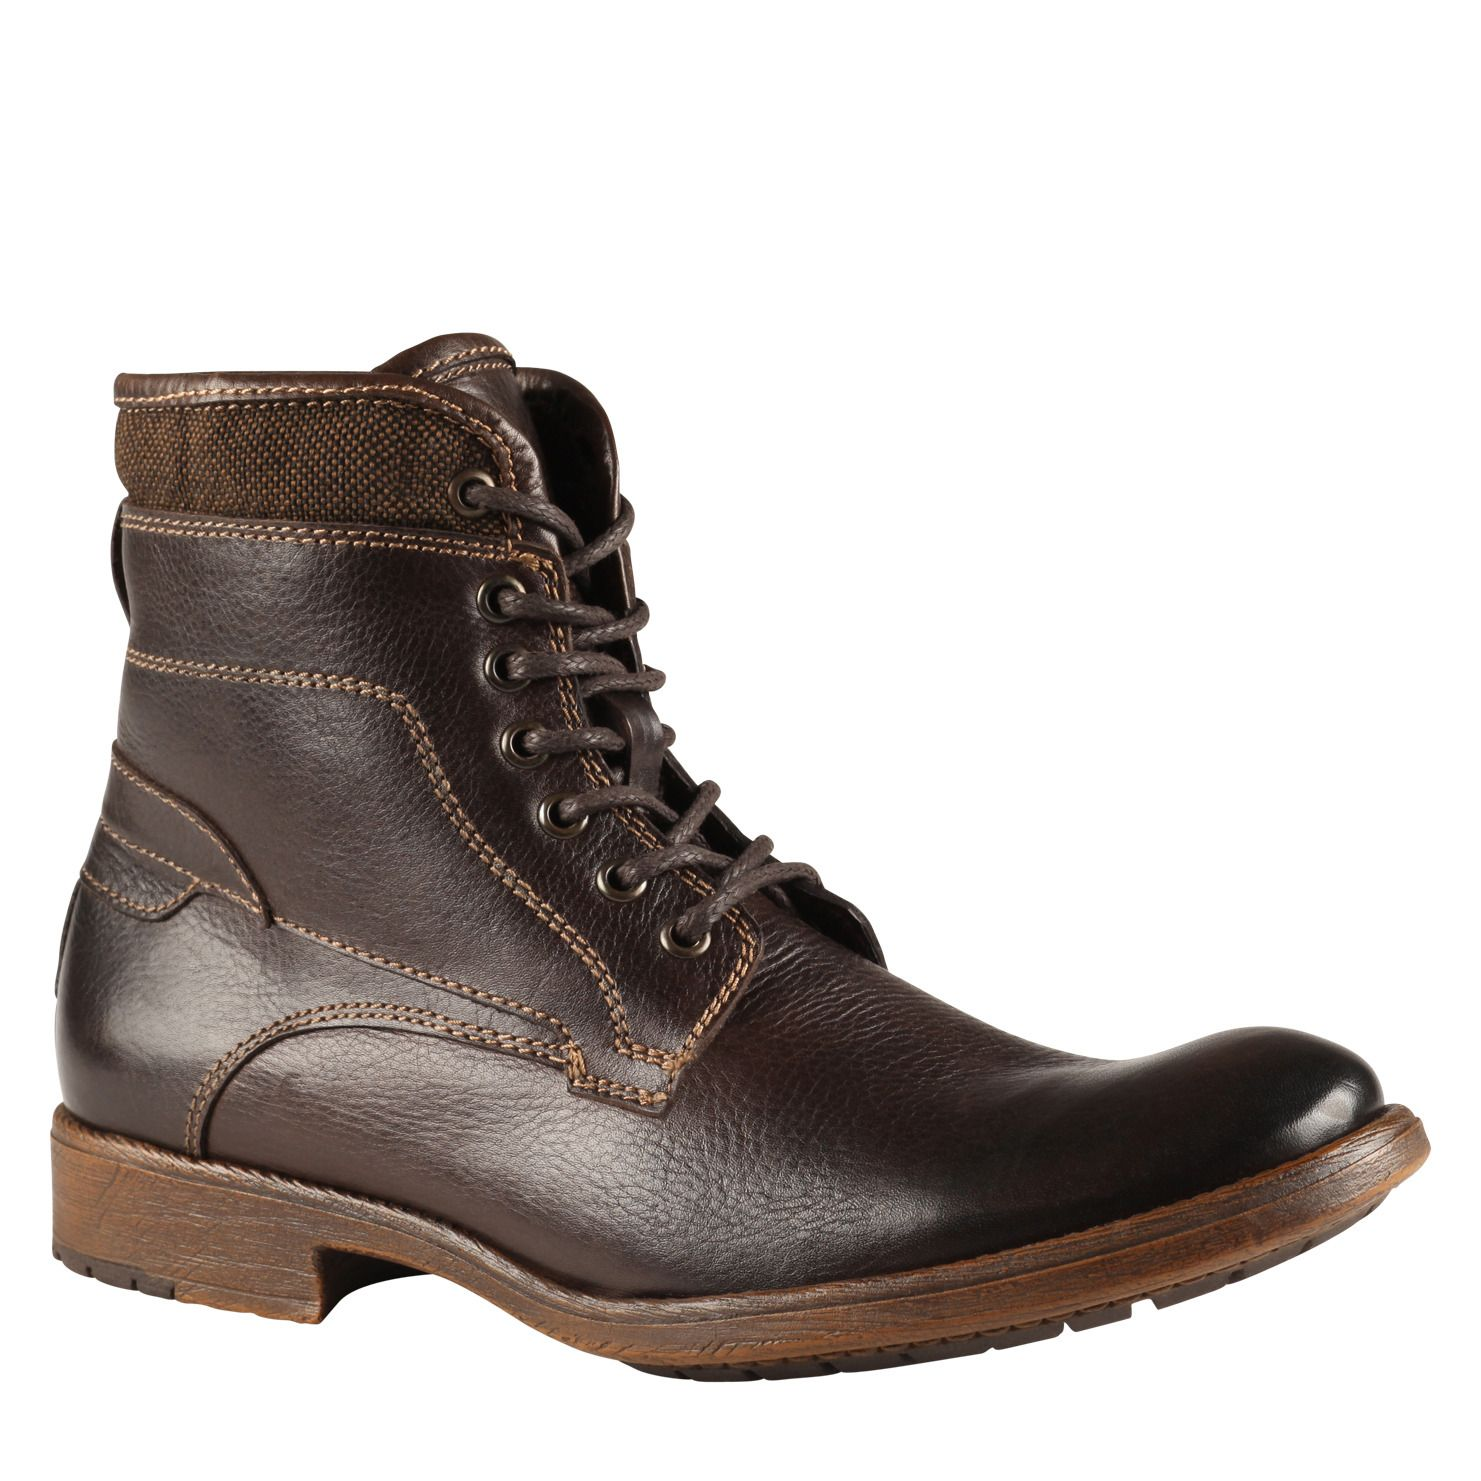 804e3cc62d Buy KUHL men's boots casual boots at CALL IT SPRING. Free Shipping ...